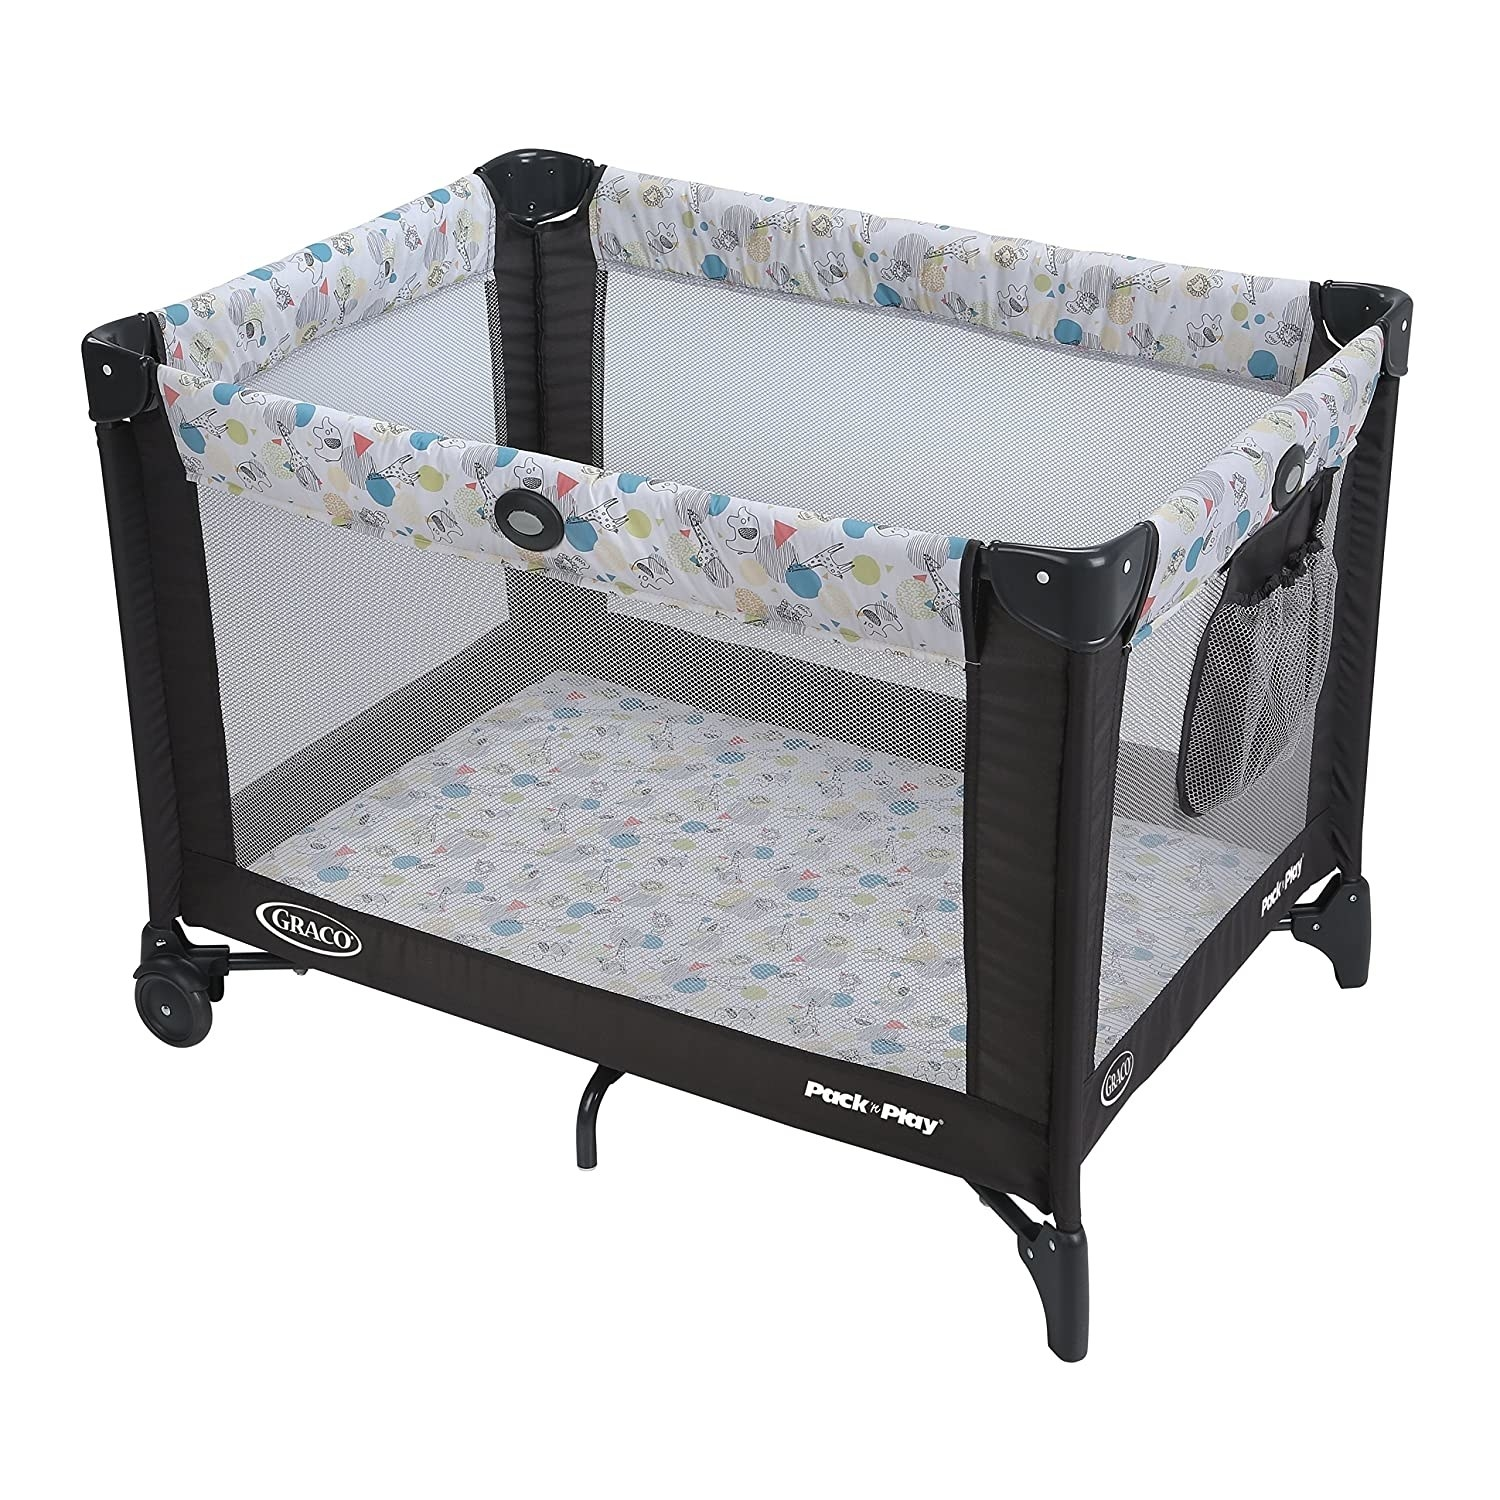 A classic Pack 'n Play playpen and portable crib